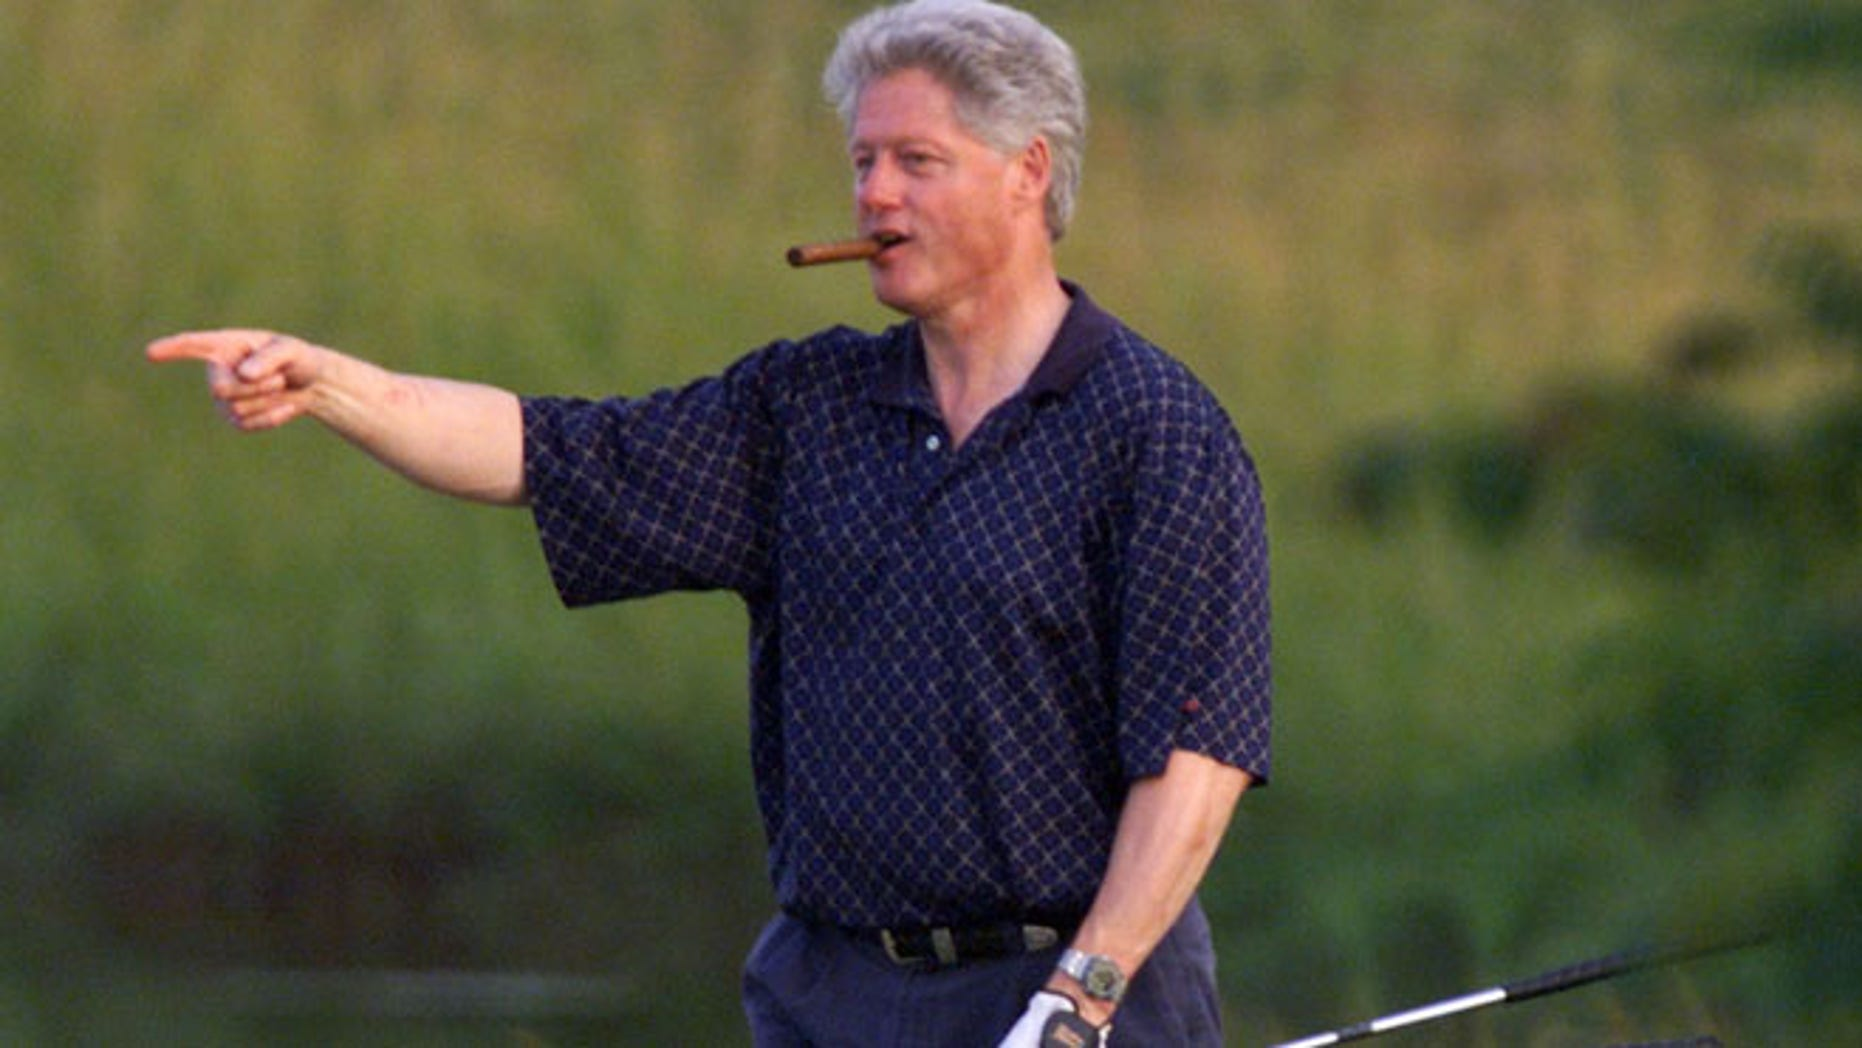 June 6, 1999: President Bill Clinton walks up to the 18th hole at the Black Rock Golf Course in Hagerstown, MD.